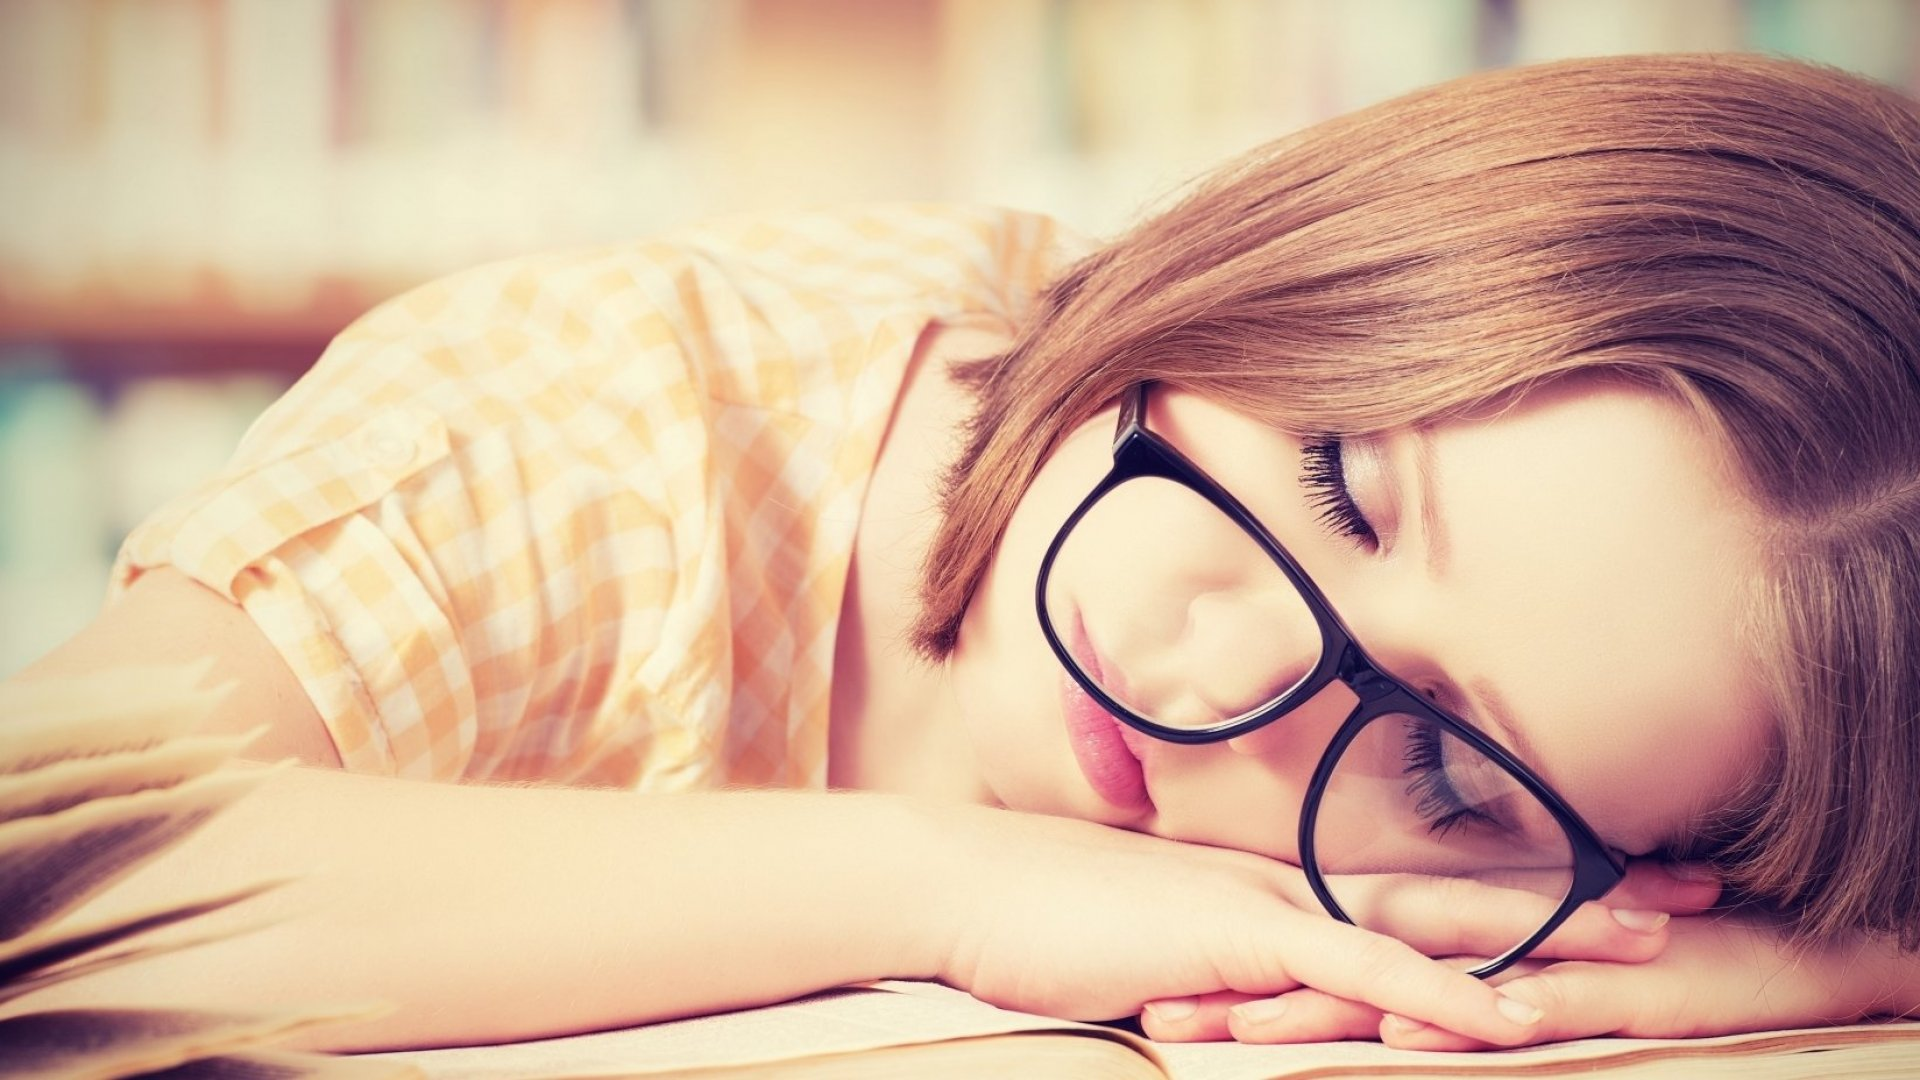 Think You Can Stay Sharp Despite Less Sleep? You're Wrong, According to Science